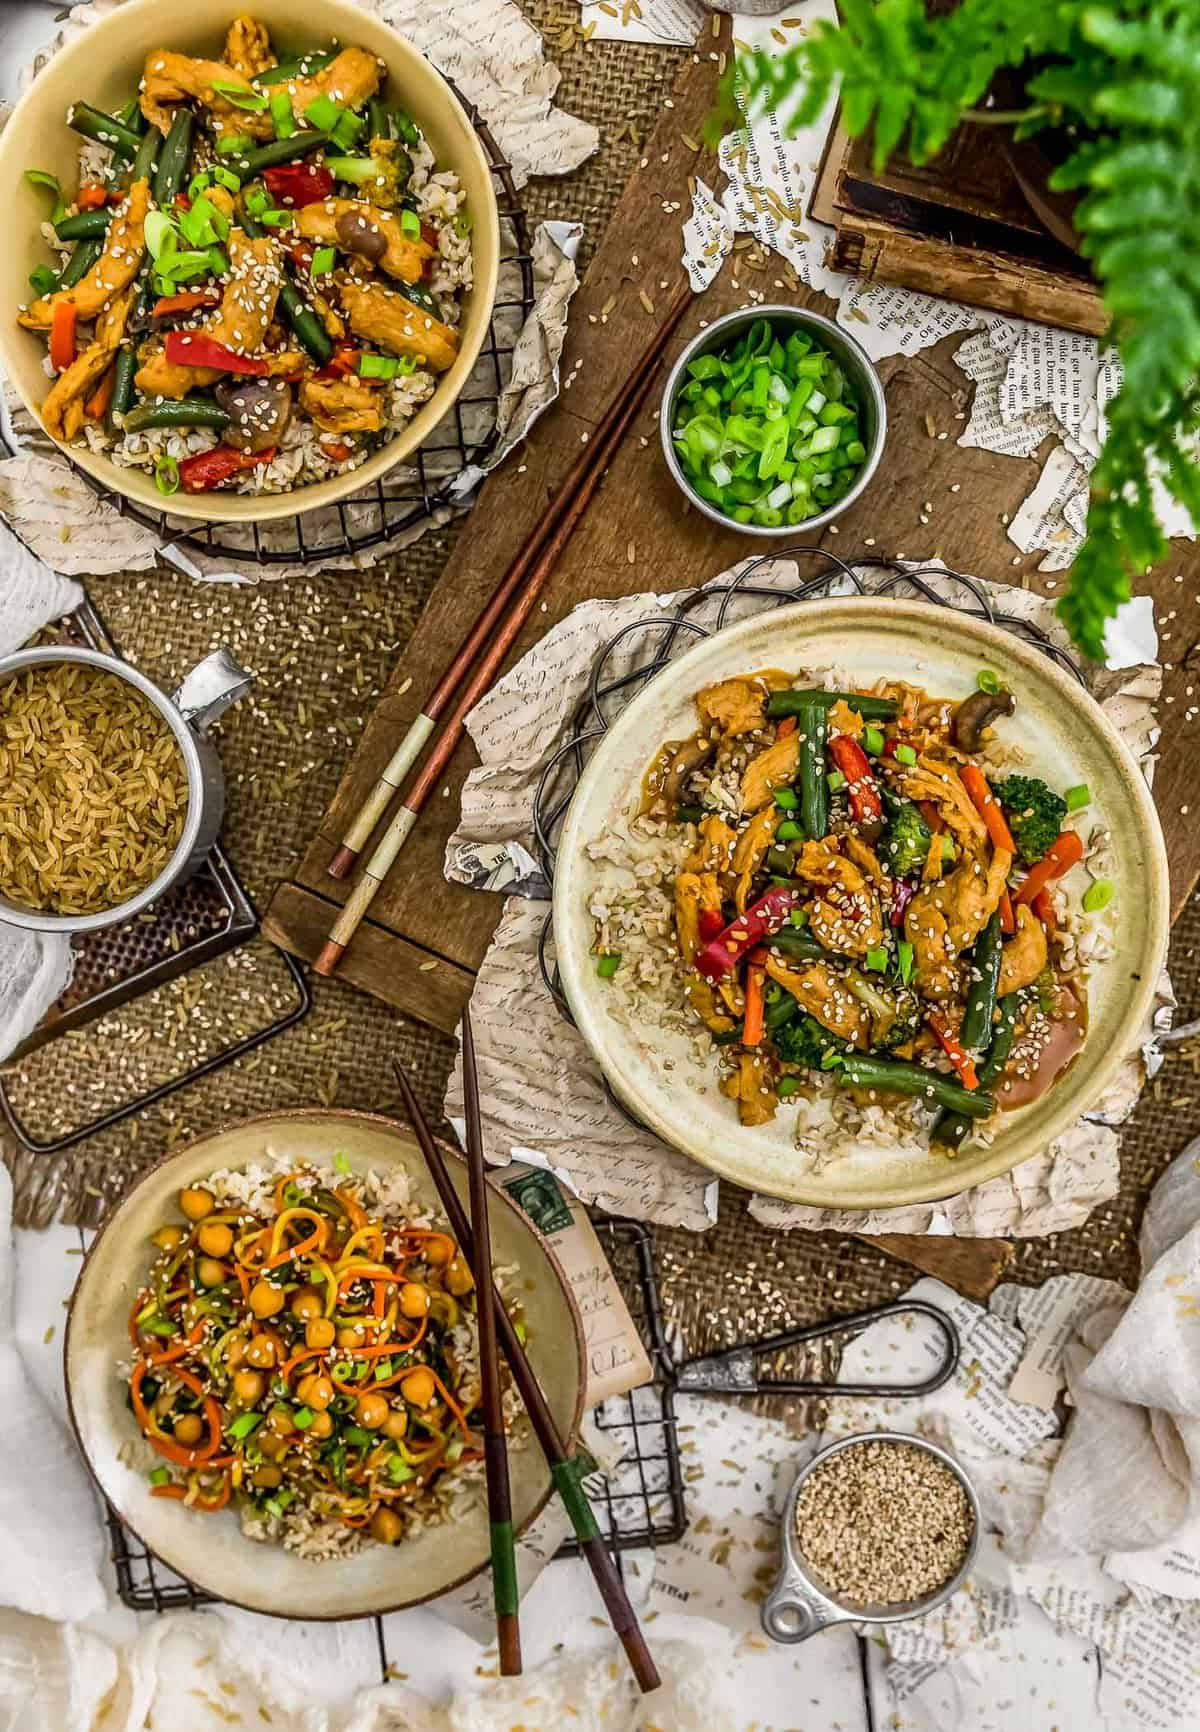 Tablescape of Vegan Spicy Honey Garlic Stir Fry